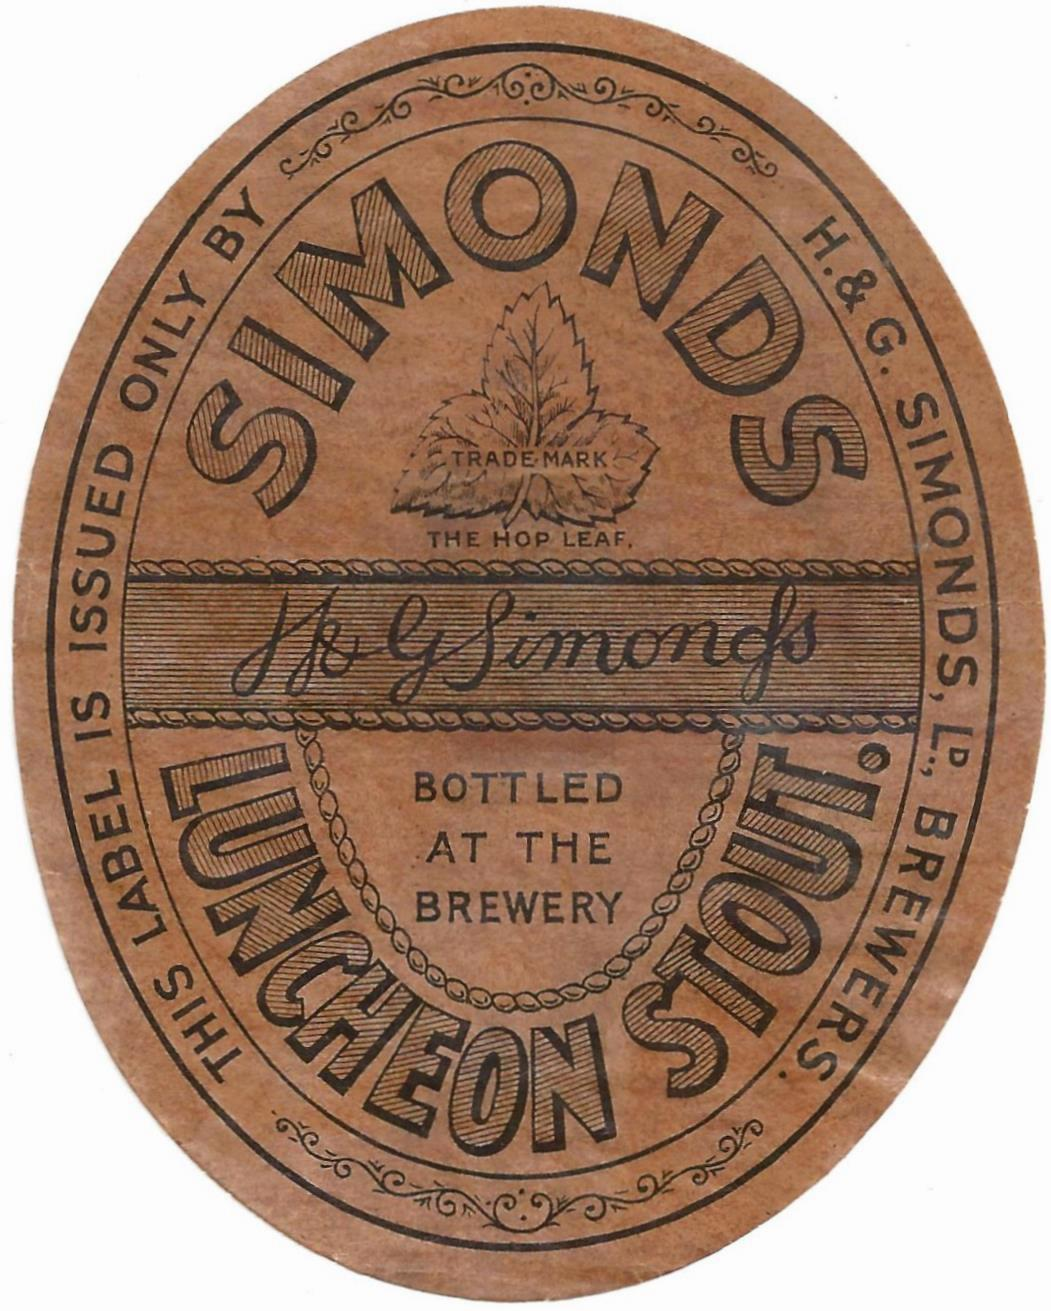 Luncheon Stout 9 oval 1930's